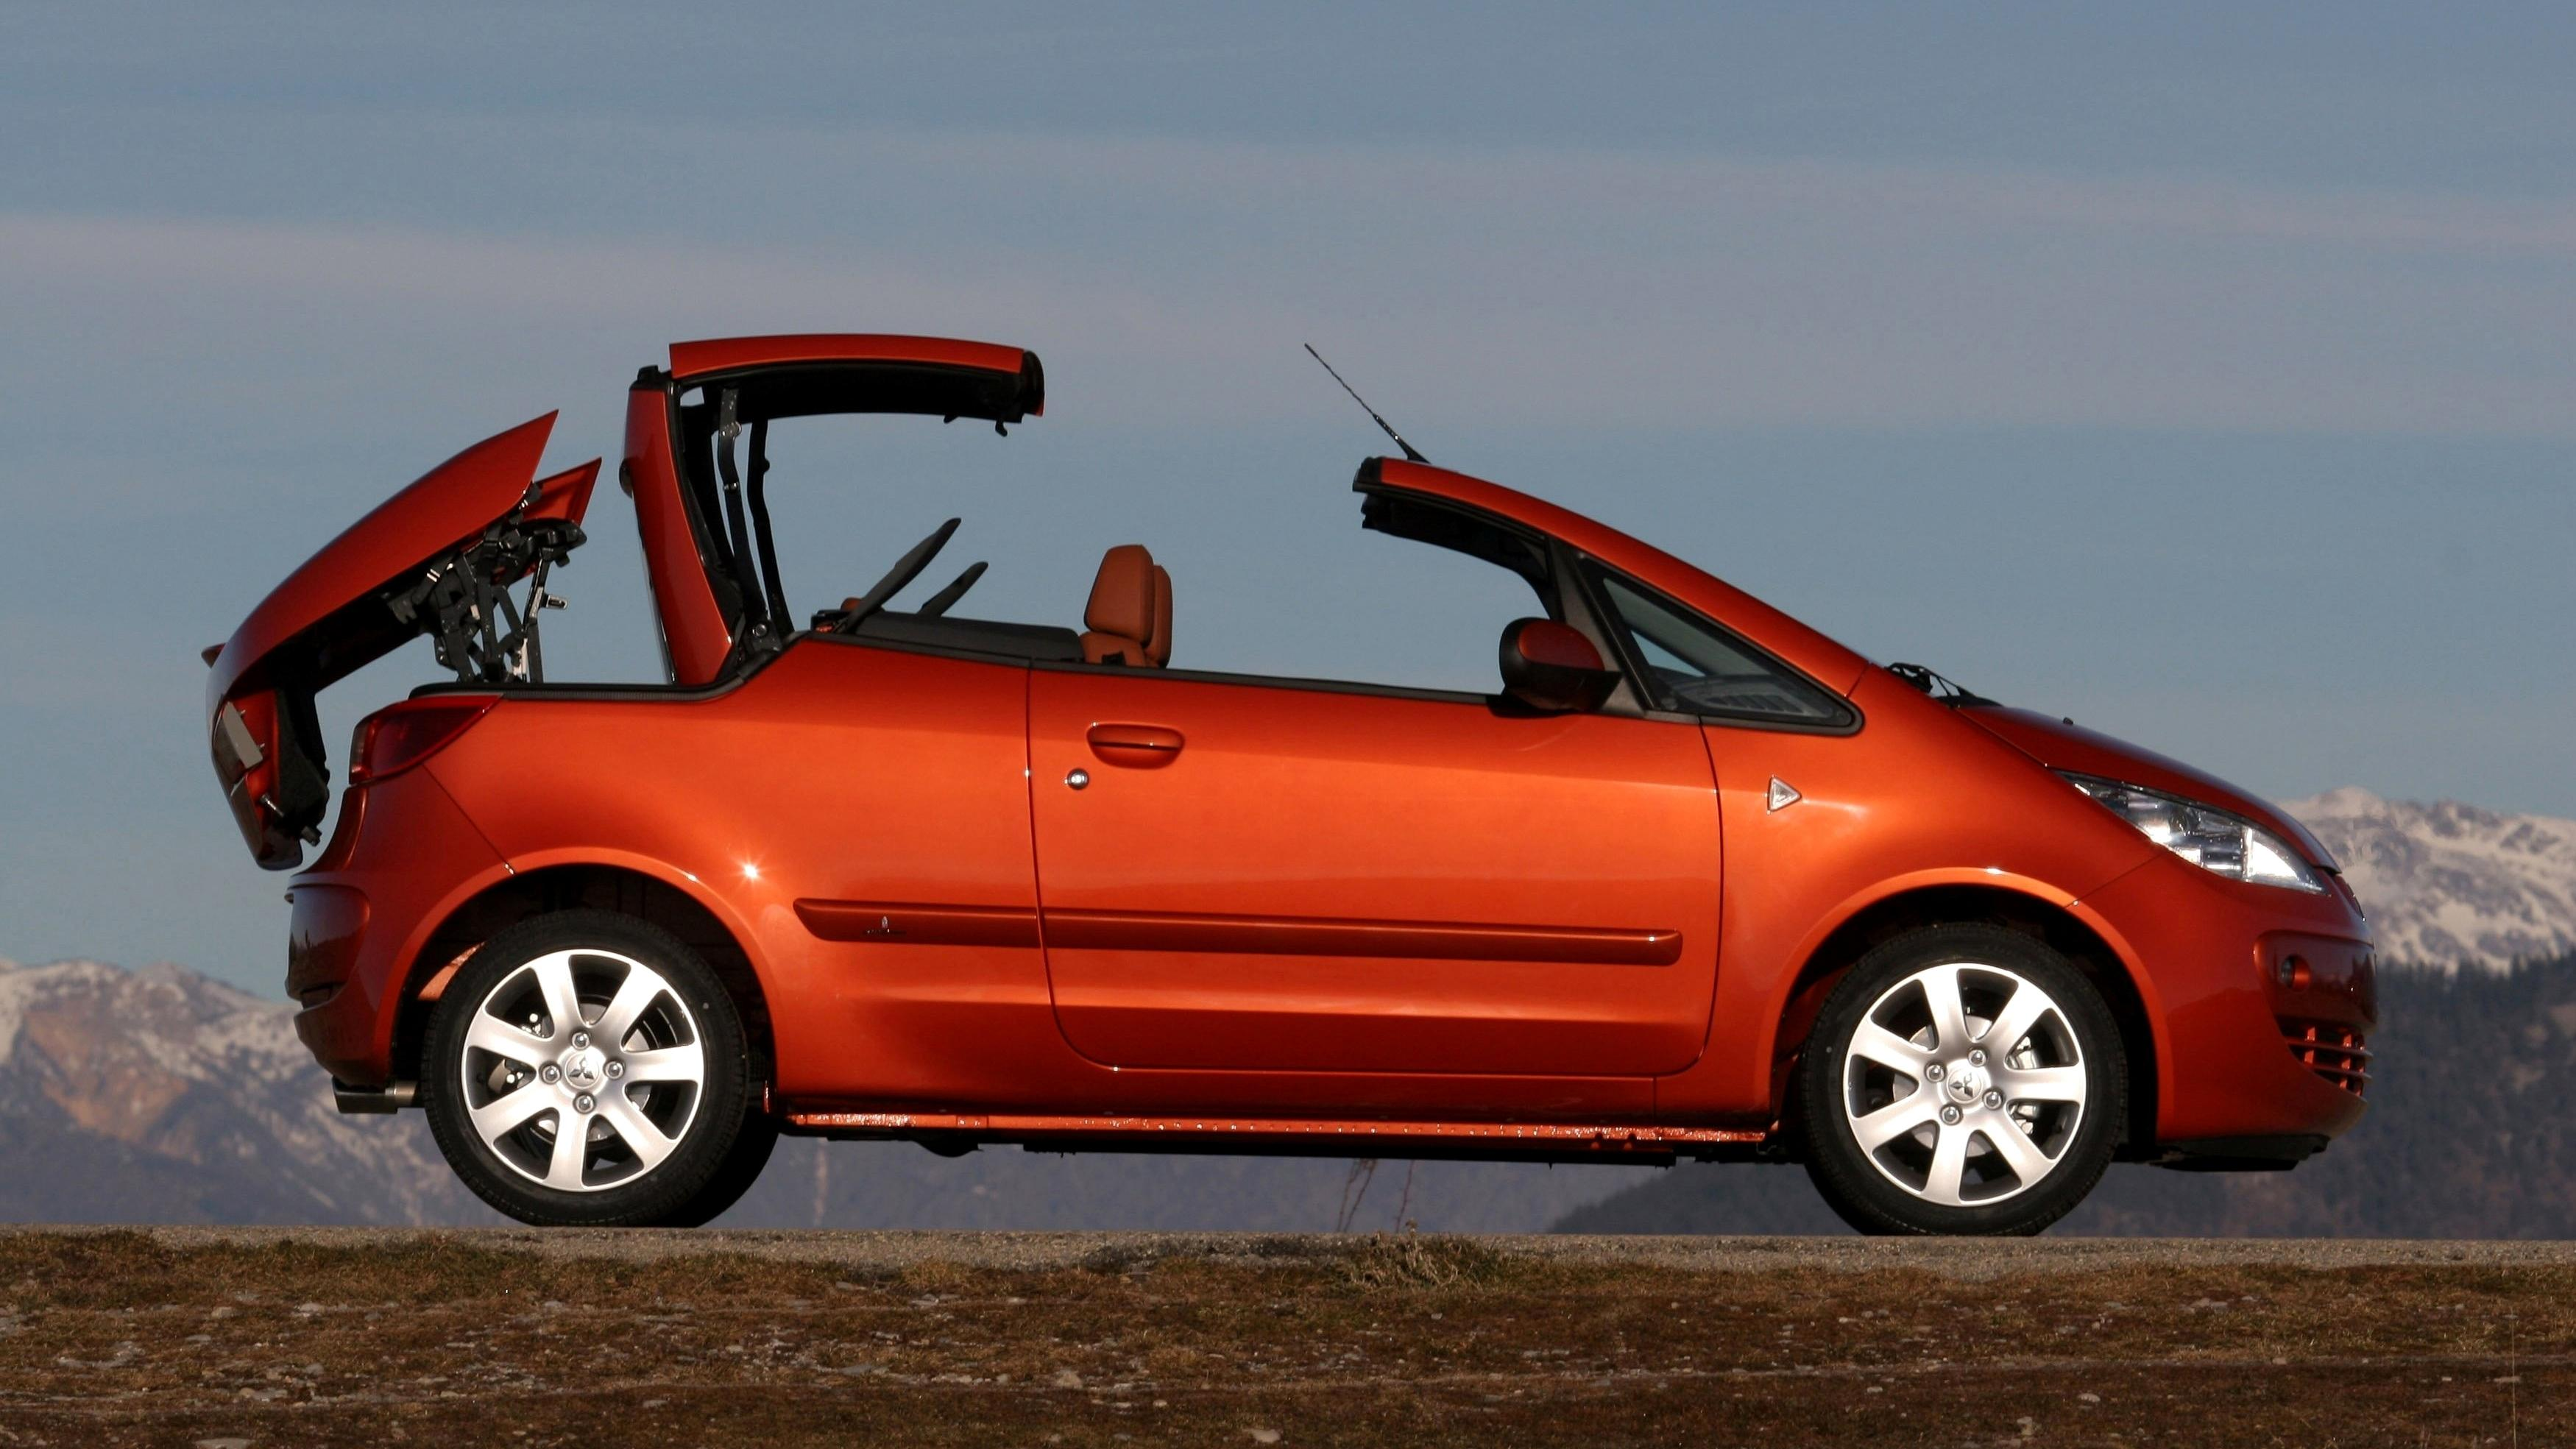 What happened to the affordable convertible?